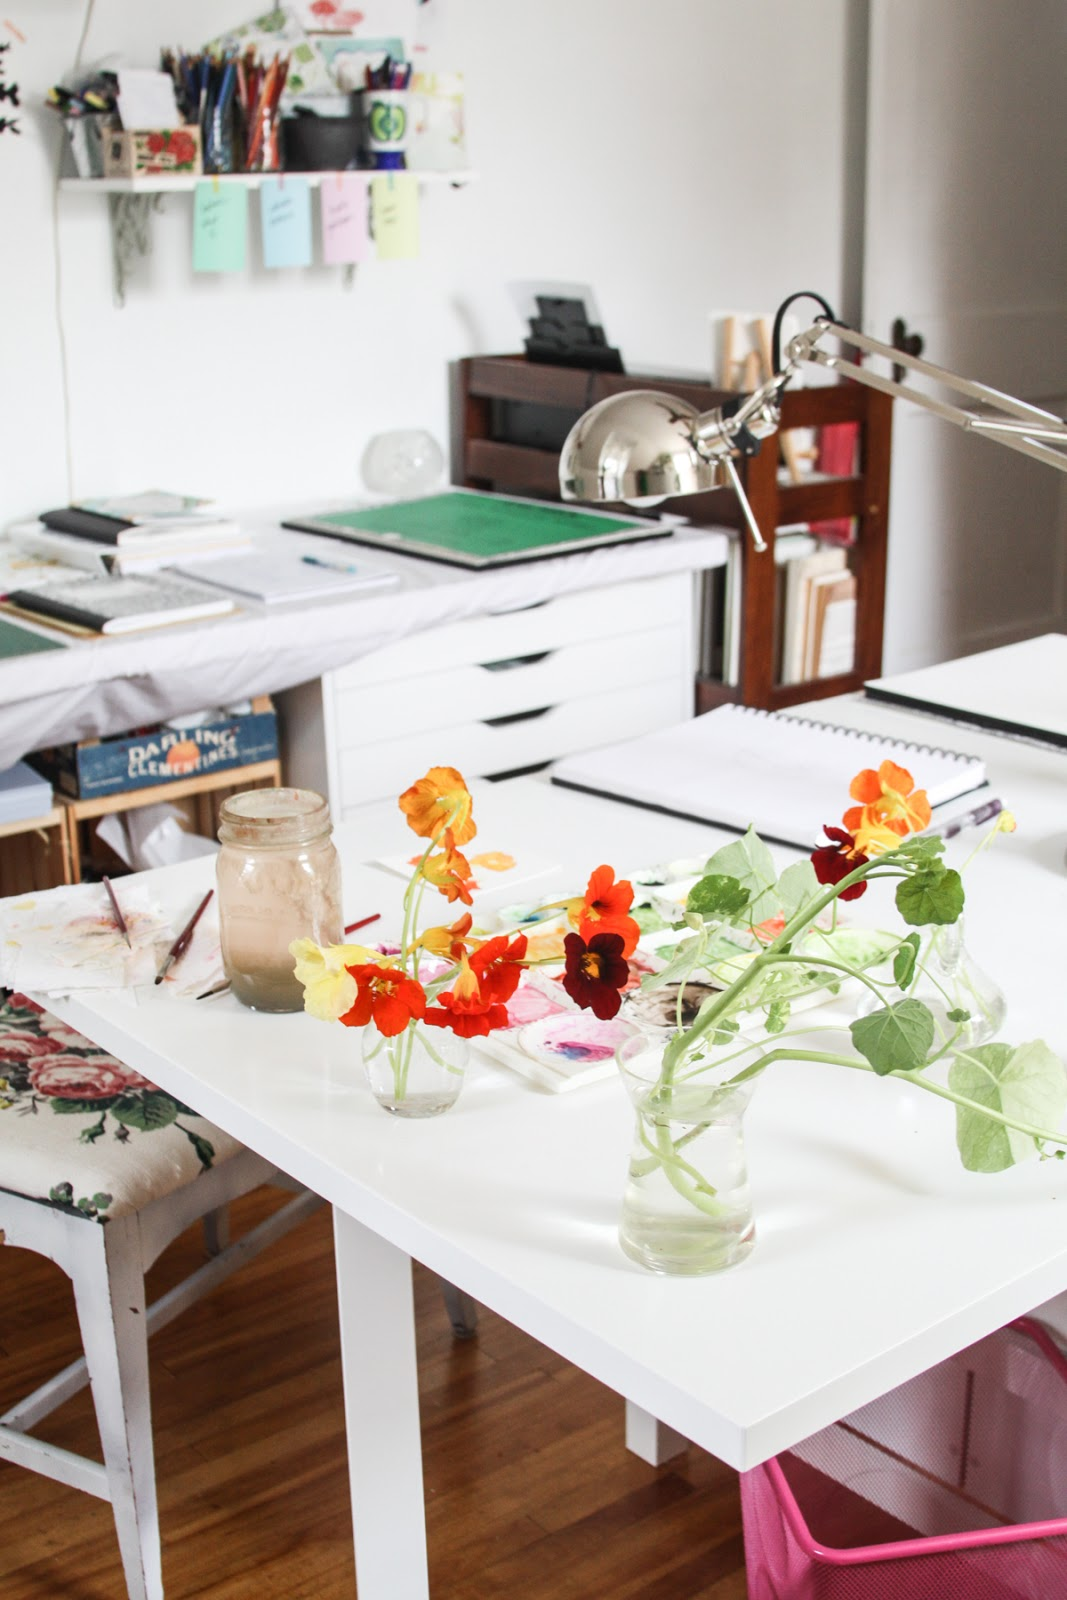 My Studio and Thoughts on Developing a Creative Work Space